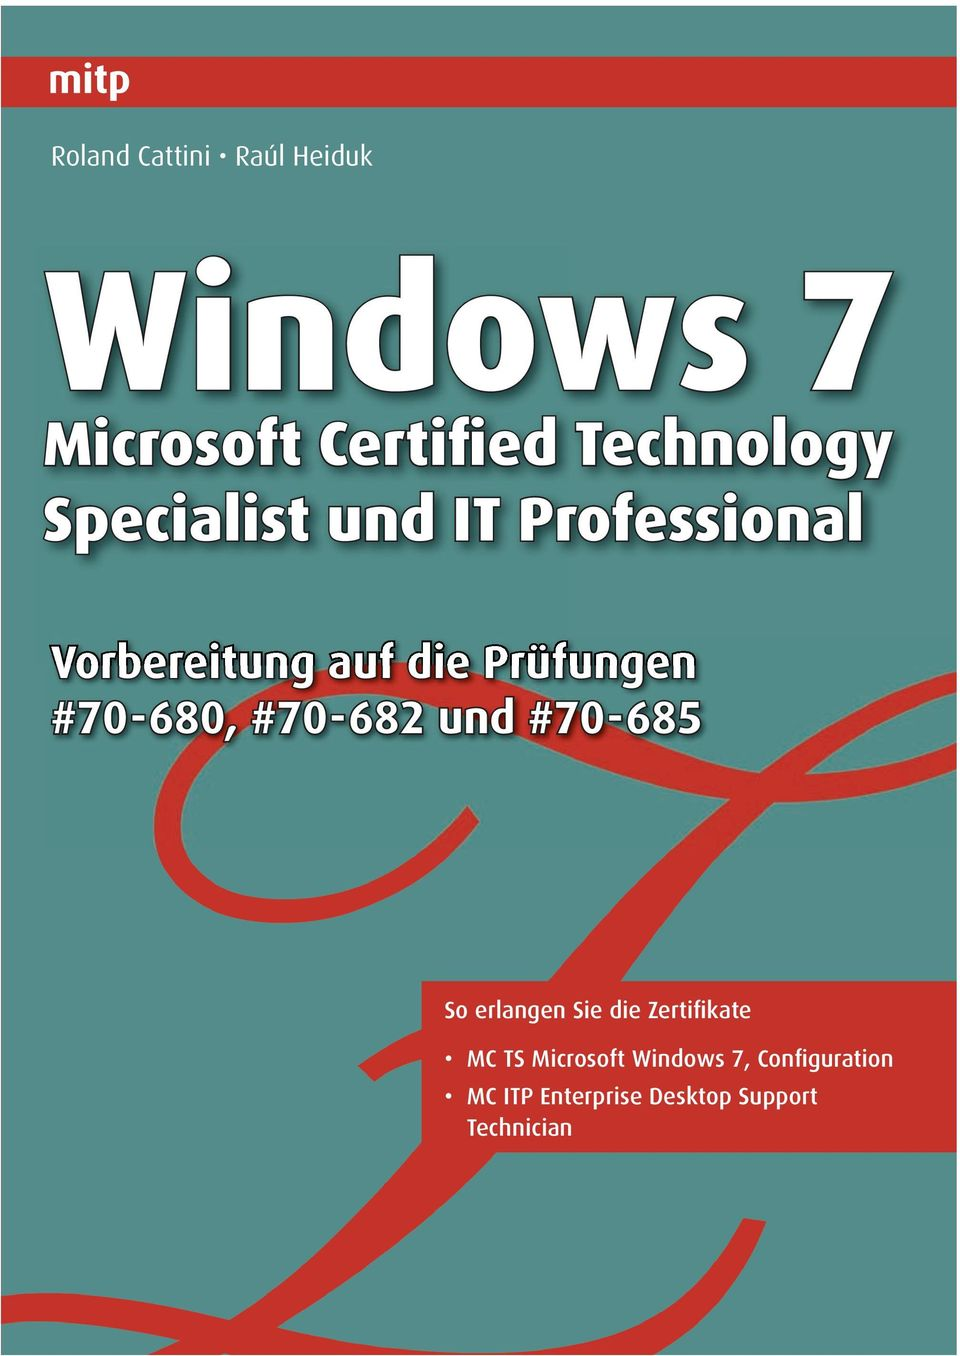 microsoft certification mcts information technology latest on